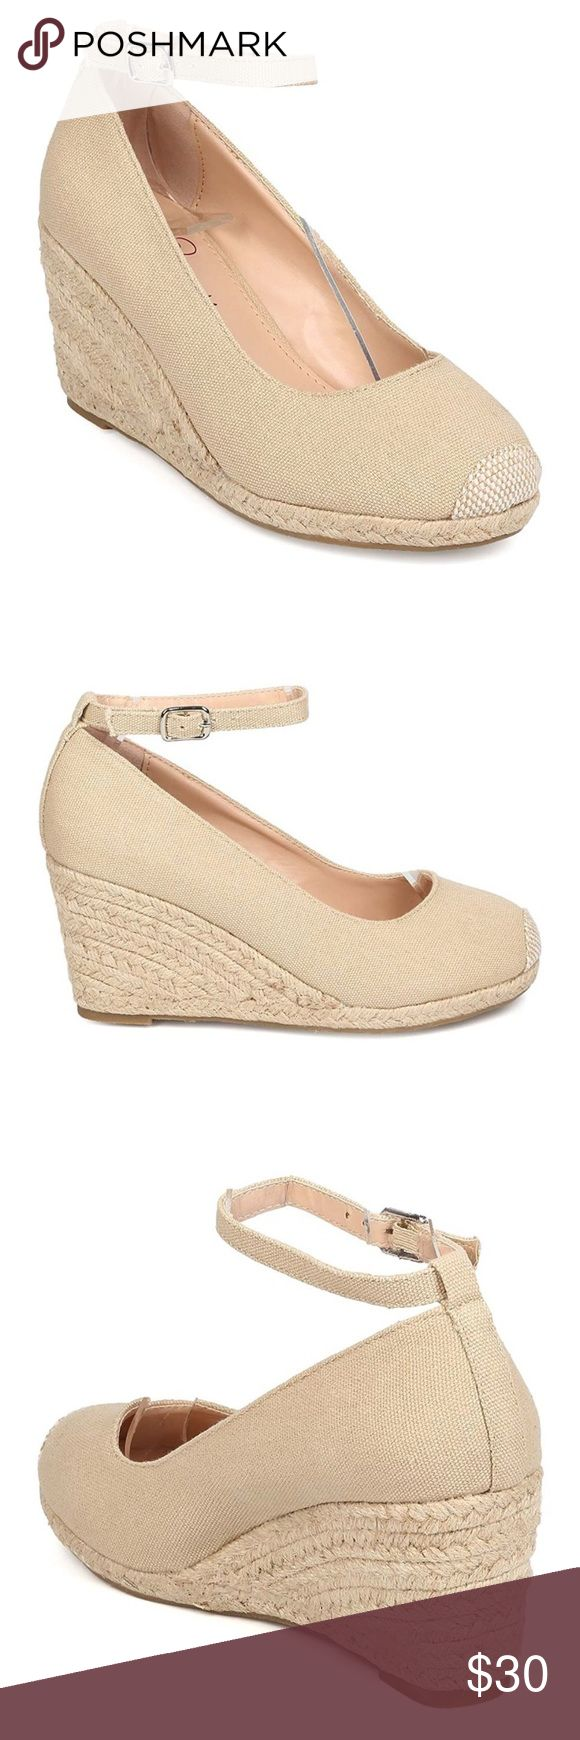 Nude espadrille wedge heels Never worn, new in box! I love these shoes but I'll be danged if they weren't too small for me. **These shoes are marked size 9 but they are definitely not a size 9.** They should fit a size 8, *maybe* 8.5. Nude canvas upper wi